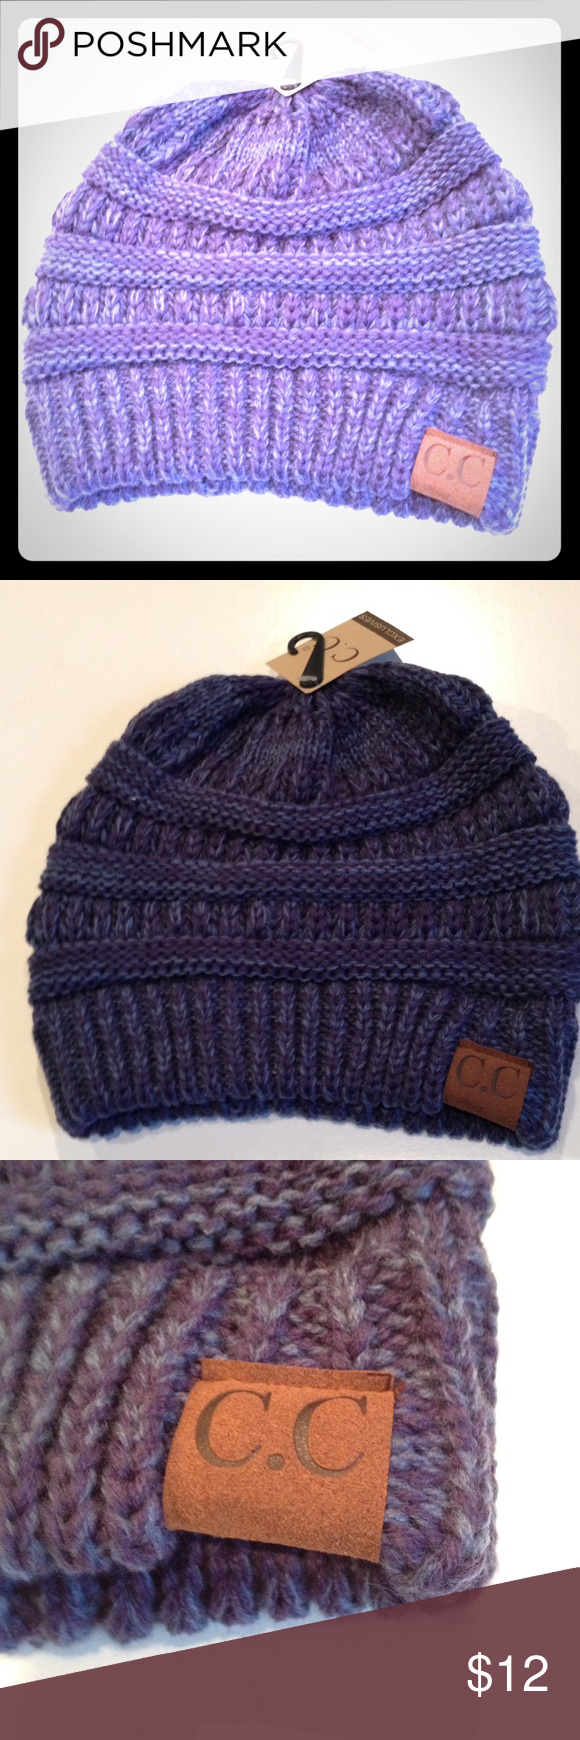 C.C Woven cap Multi blue Colored beanie/ cap. New with tags. C.C Accessories Hats